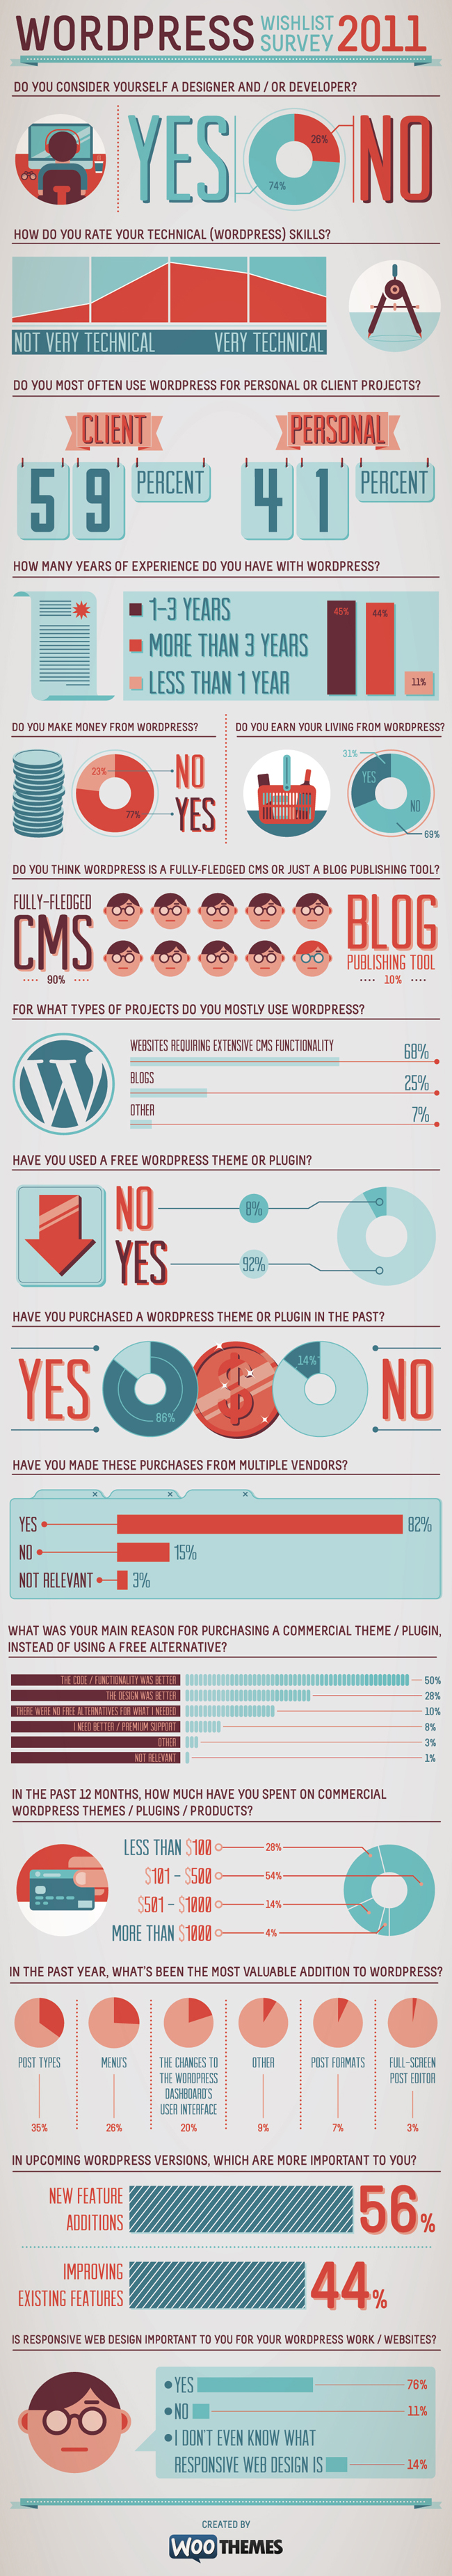 Results Of WooThemes WordPress Wishlist Survey